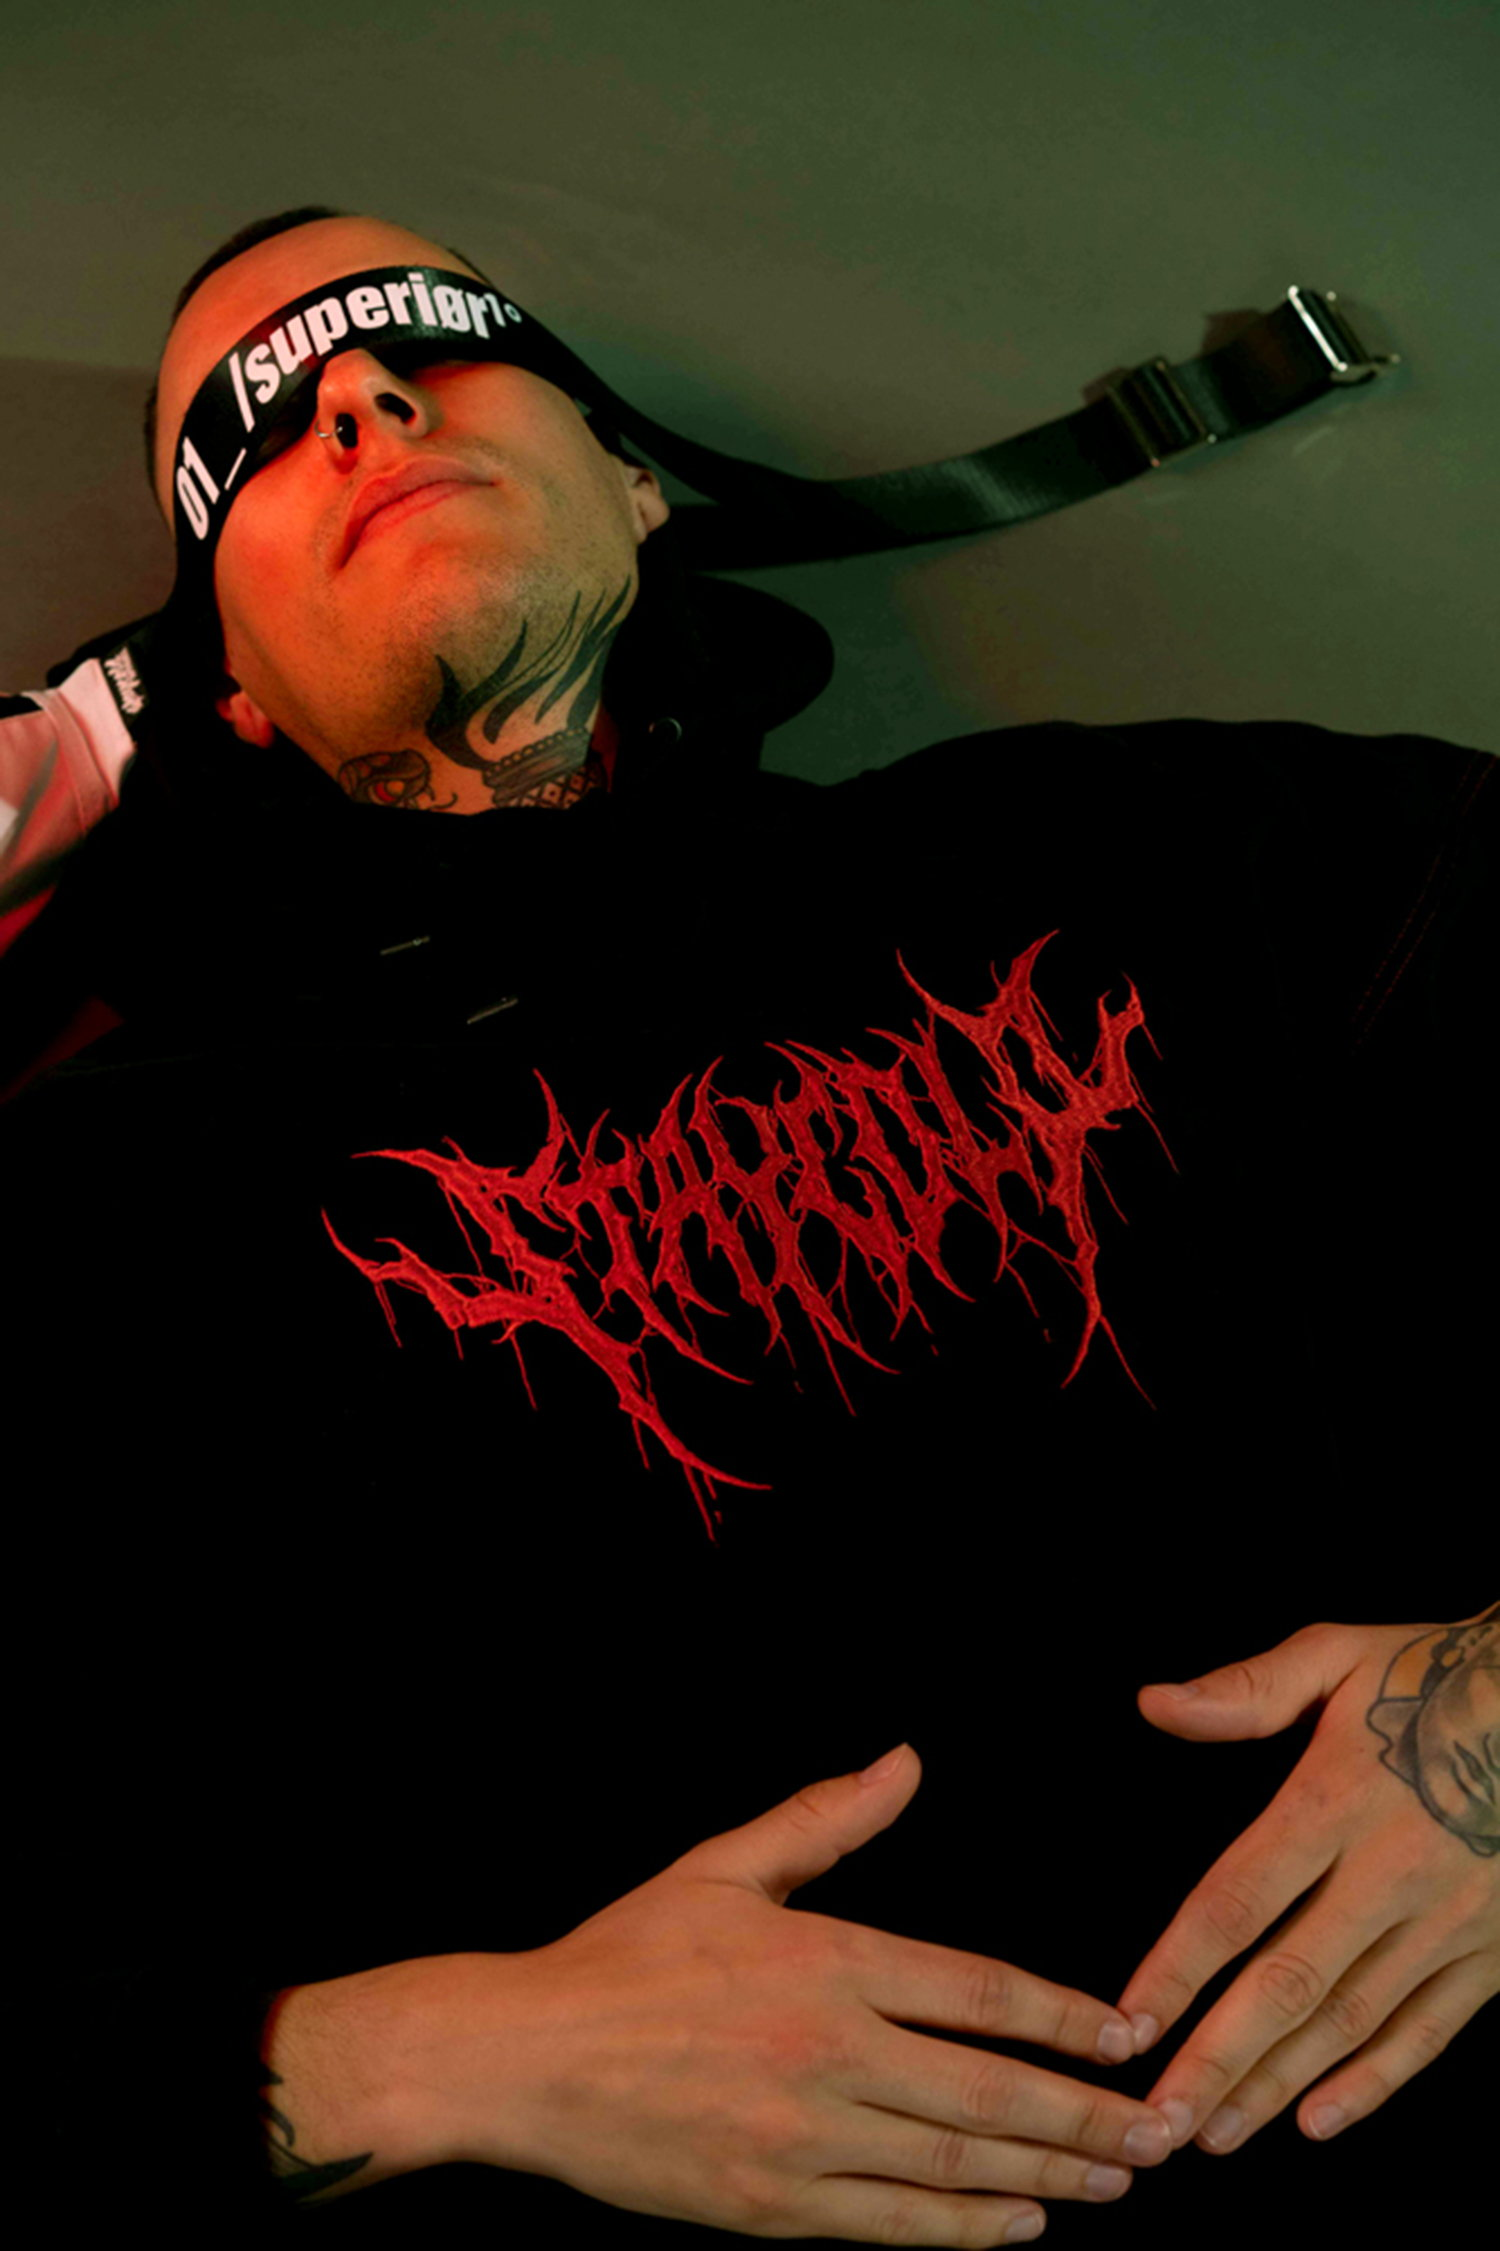 bloodshot hoody, superior clothing line